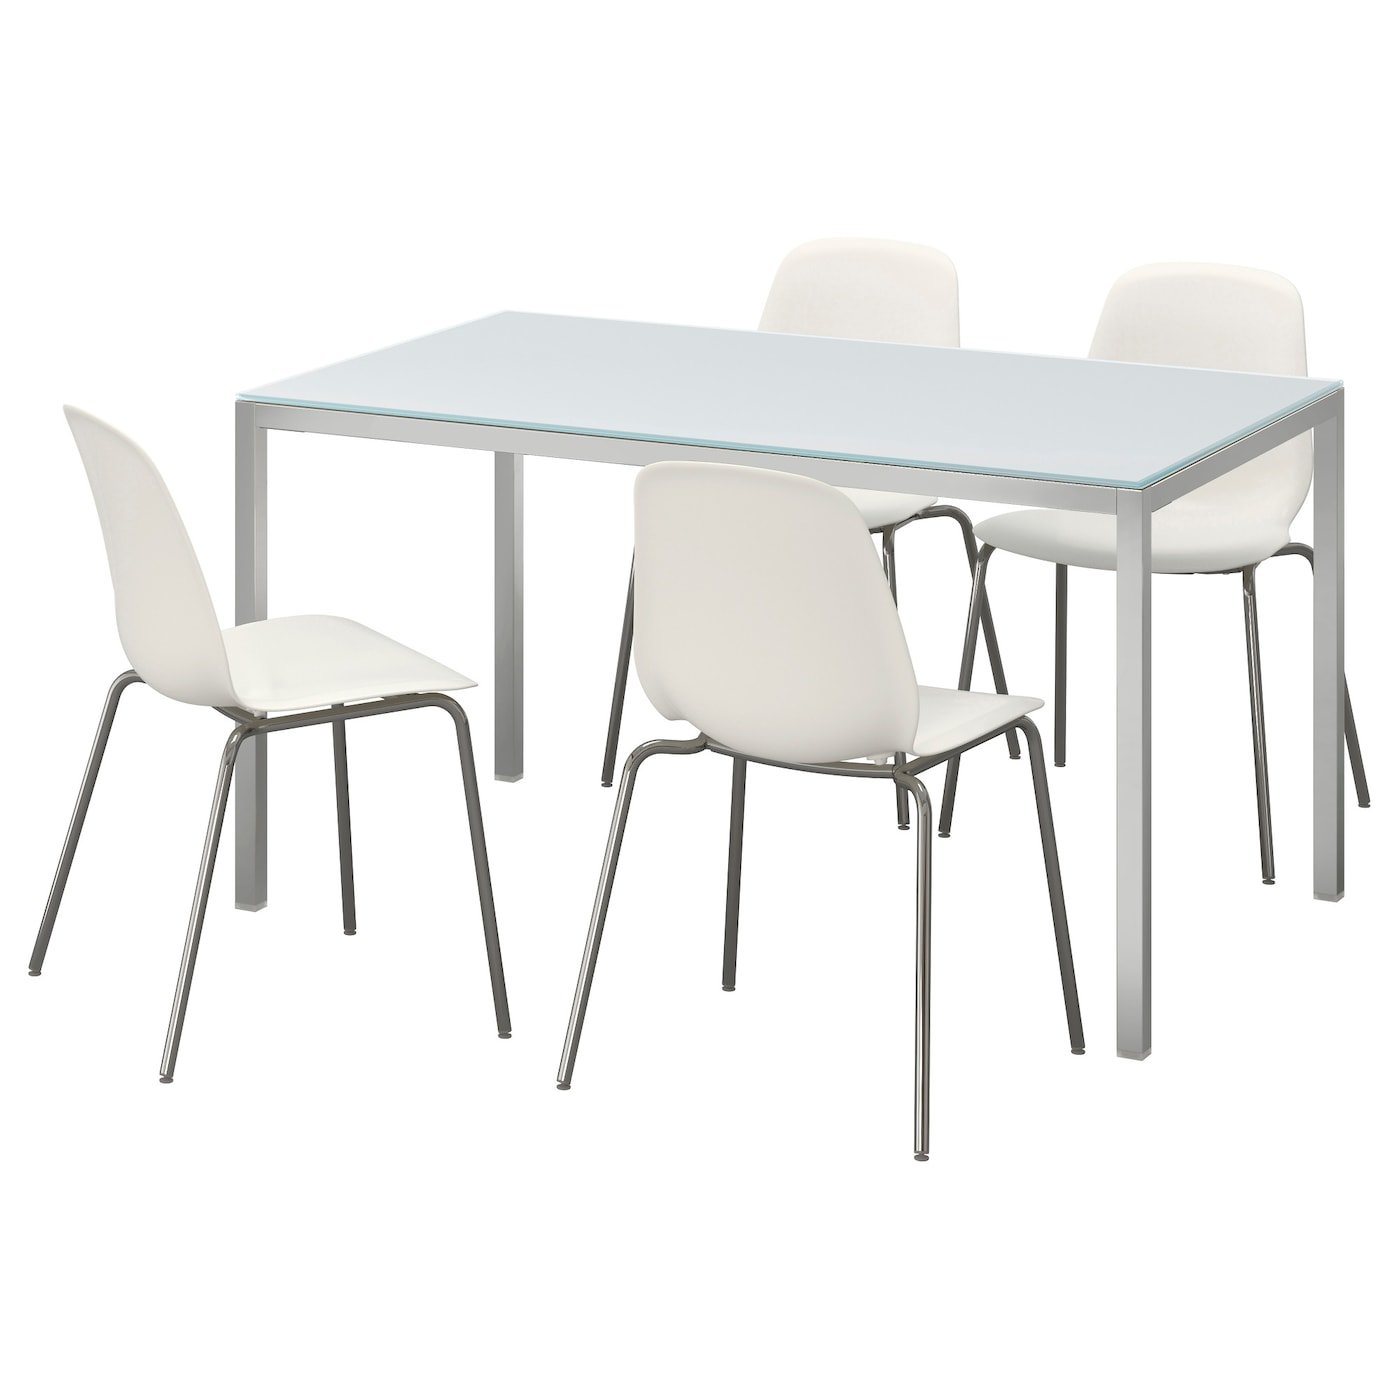 Torsby leifarne table and 4 chairs glass white white 135 for Table ikea blanche